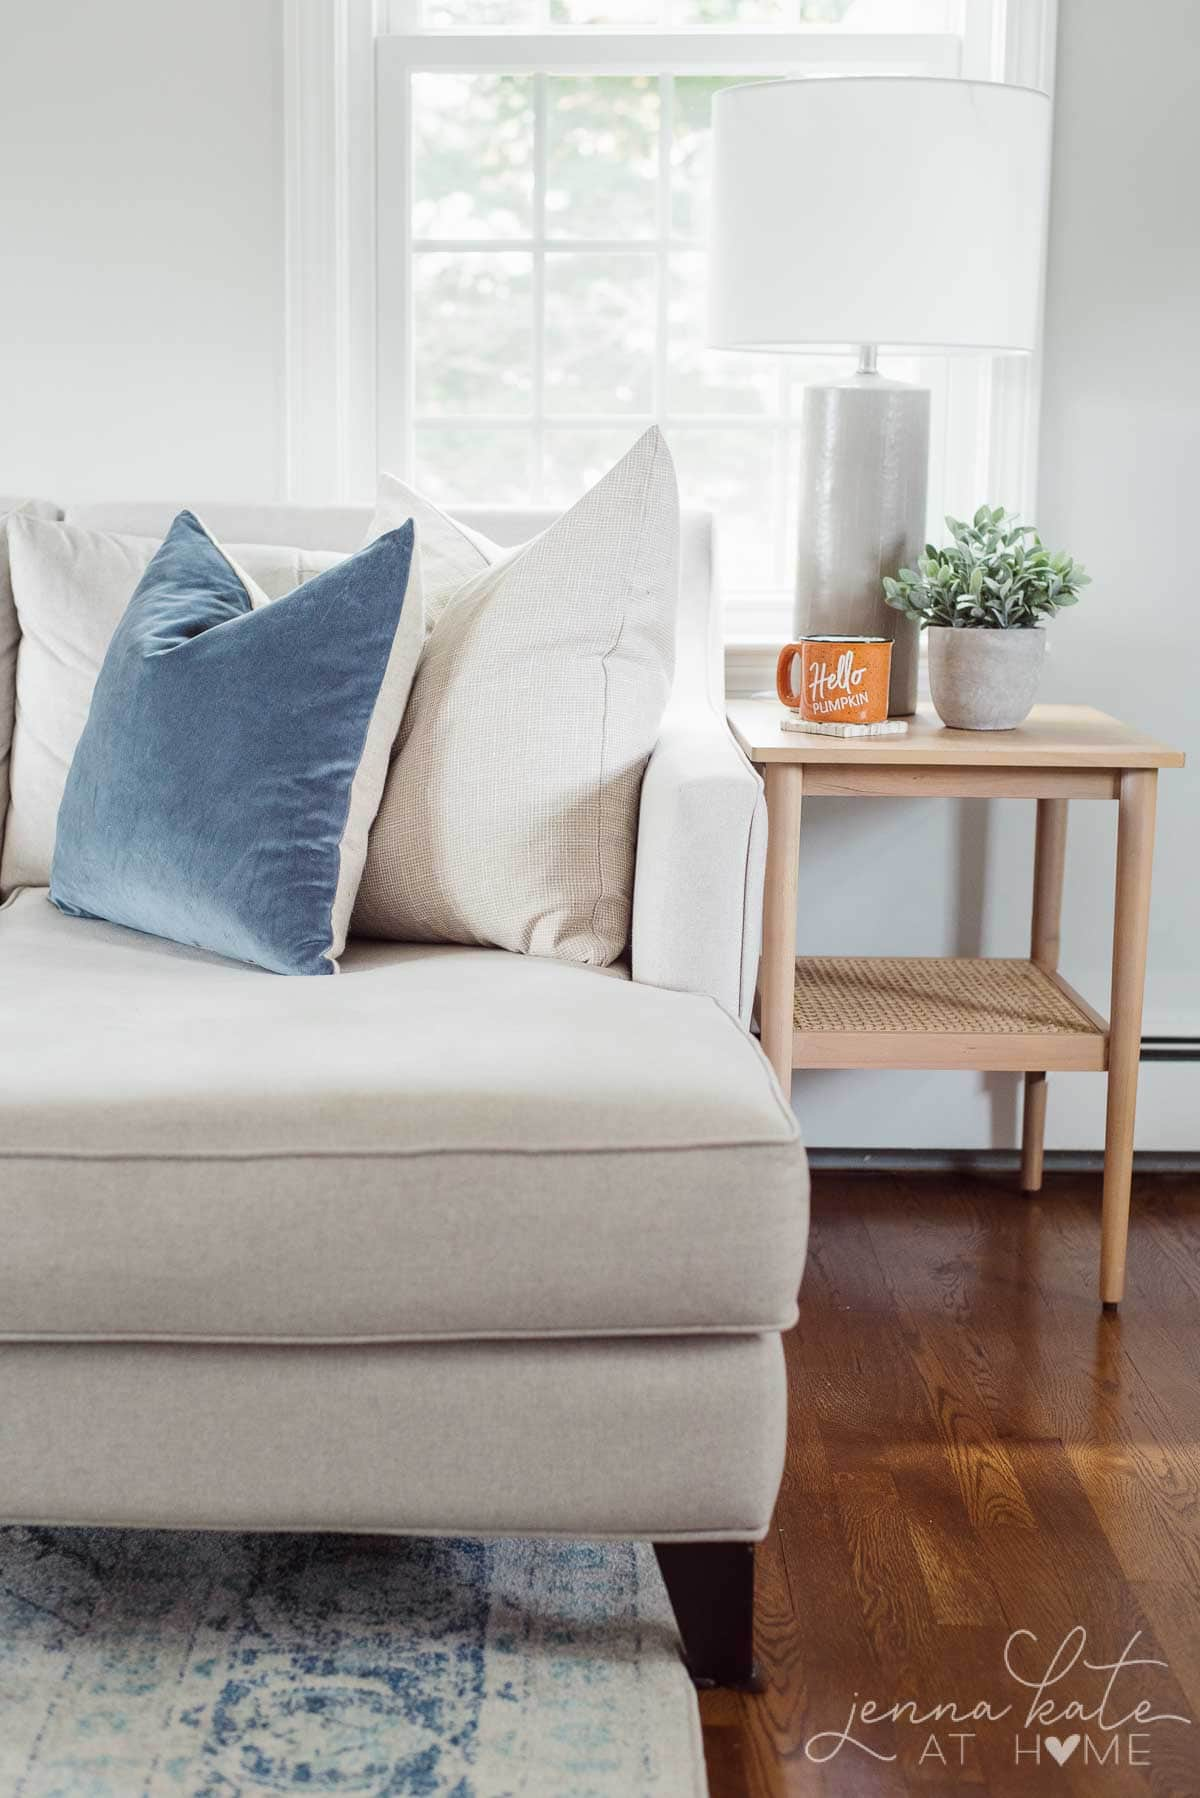 Clean and uncluttered couch and coffee table for fall